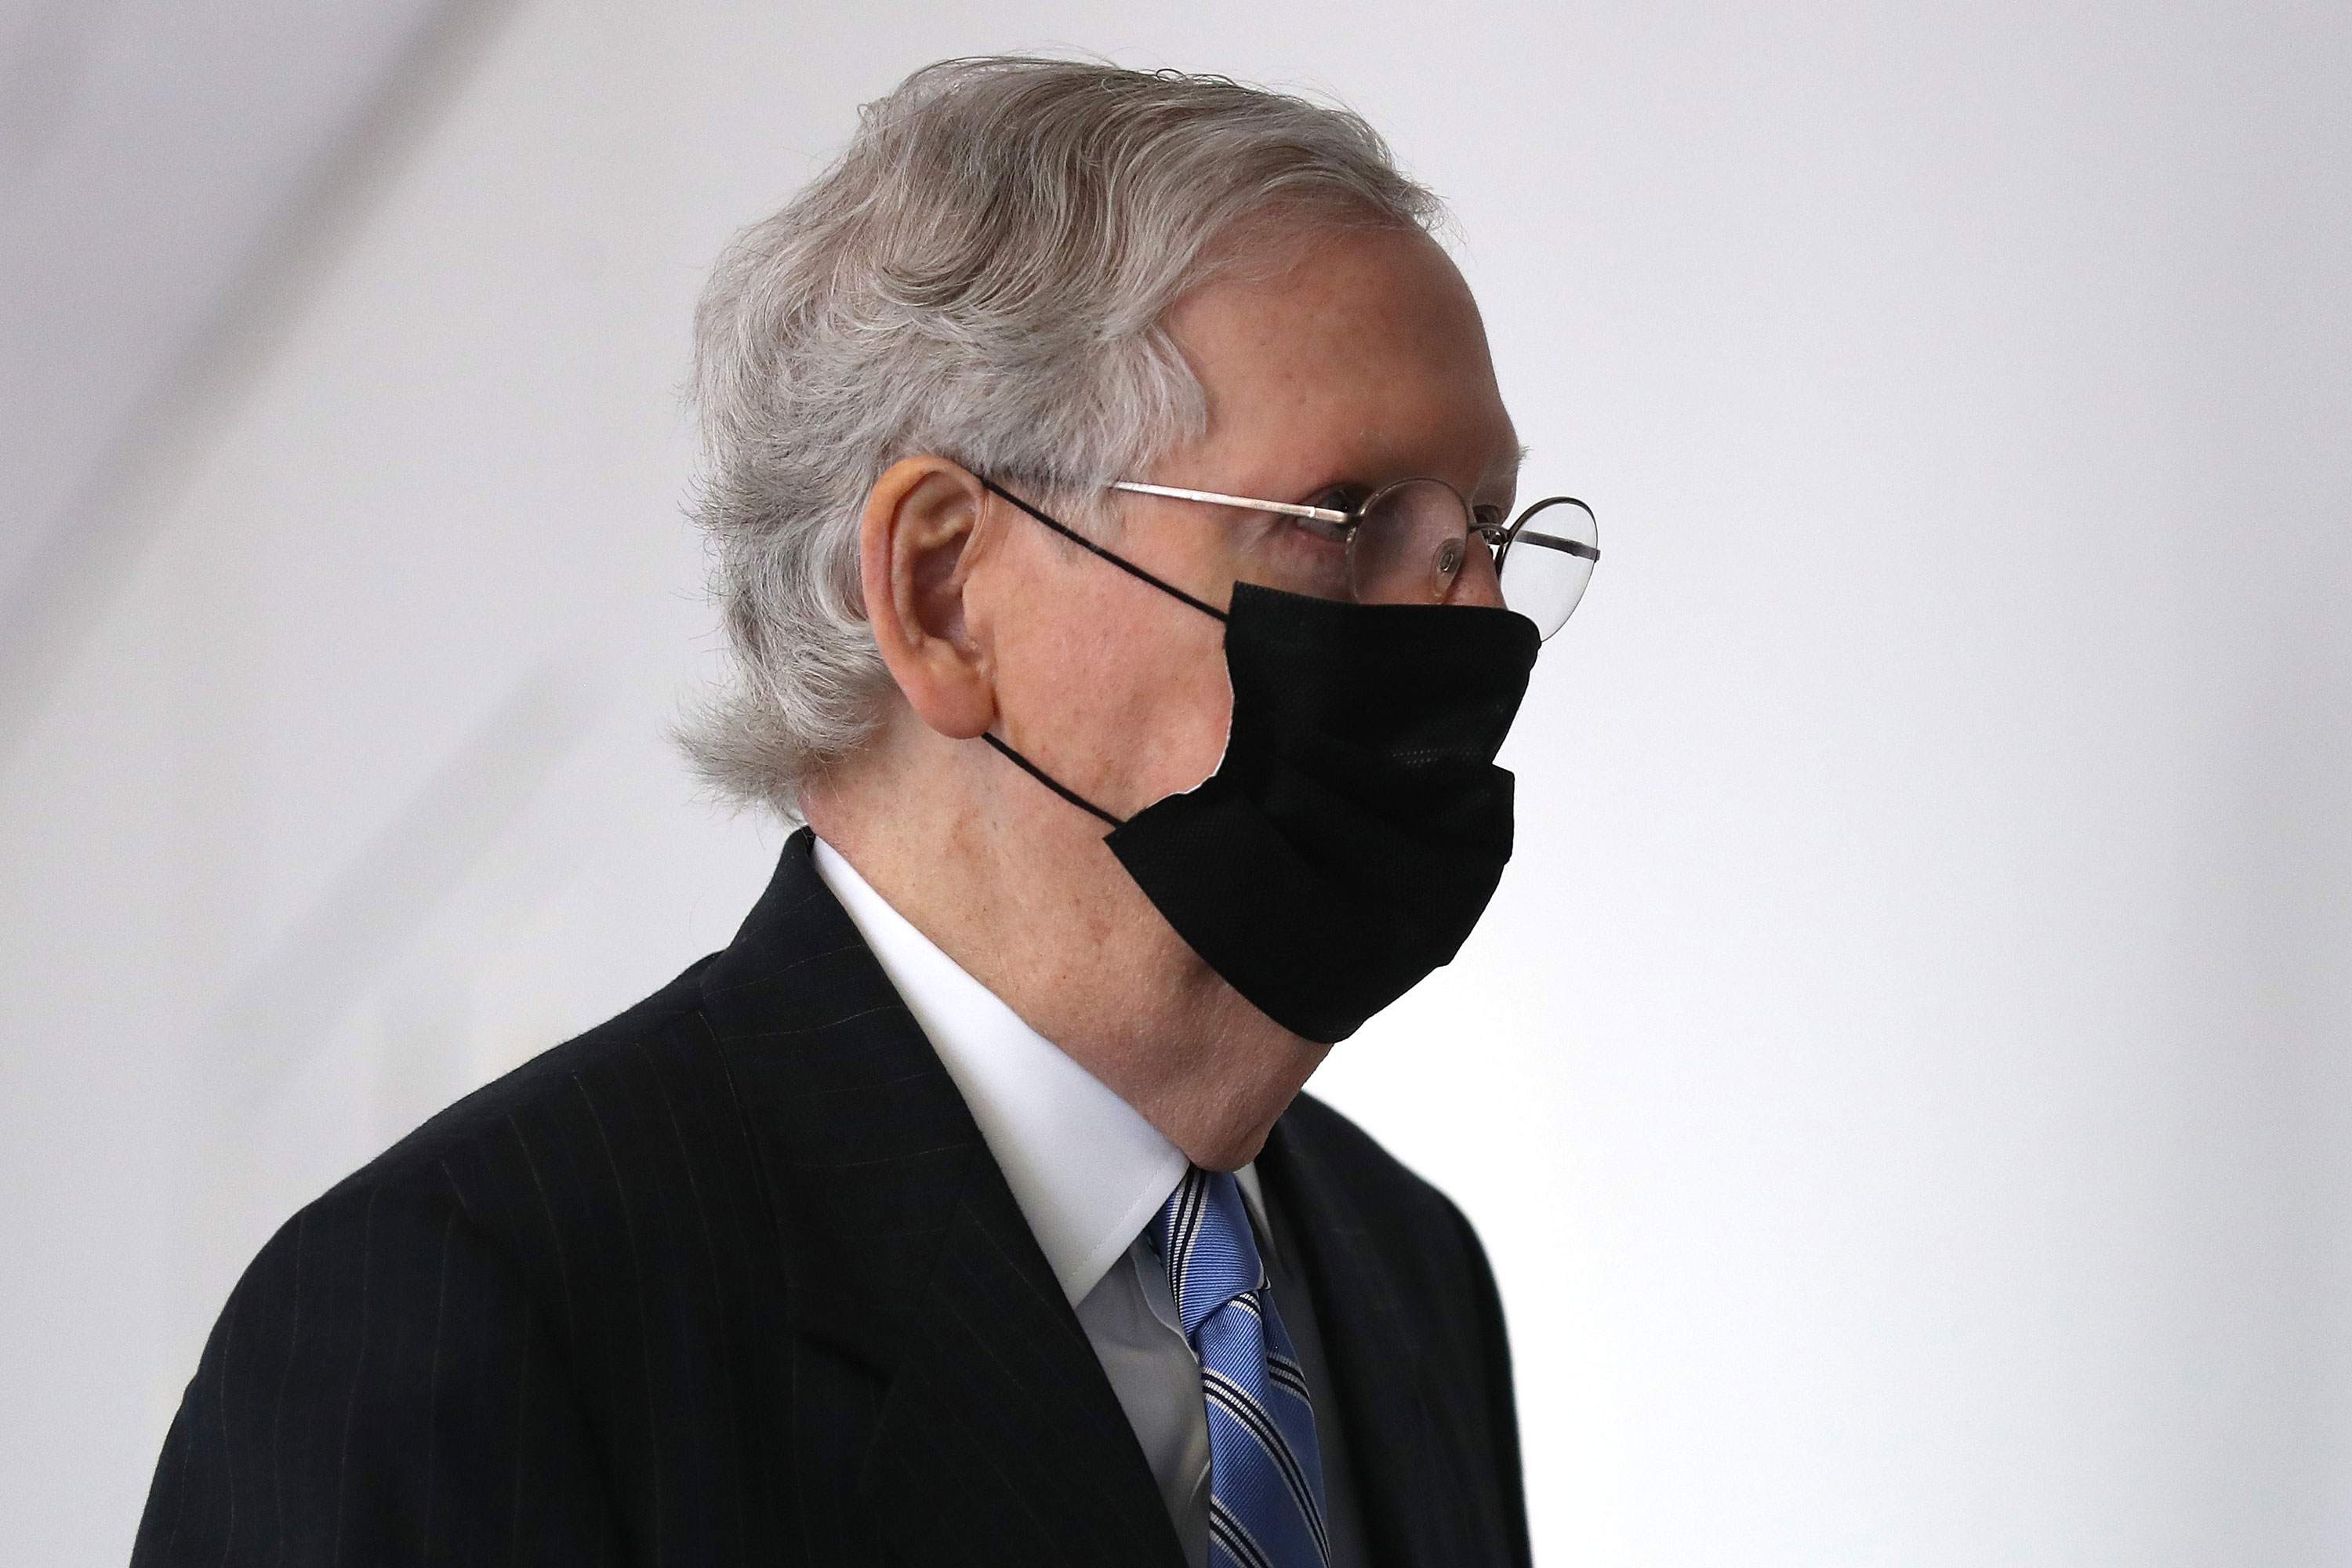 No Supreme Court nominee yet, but McConnell already on the cusp of having the votes